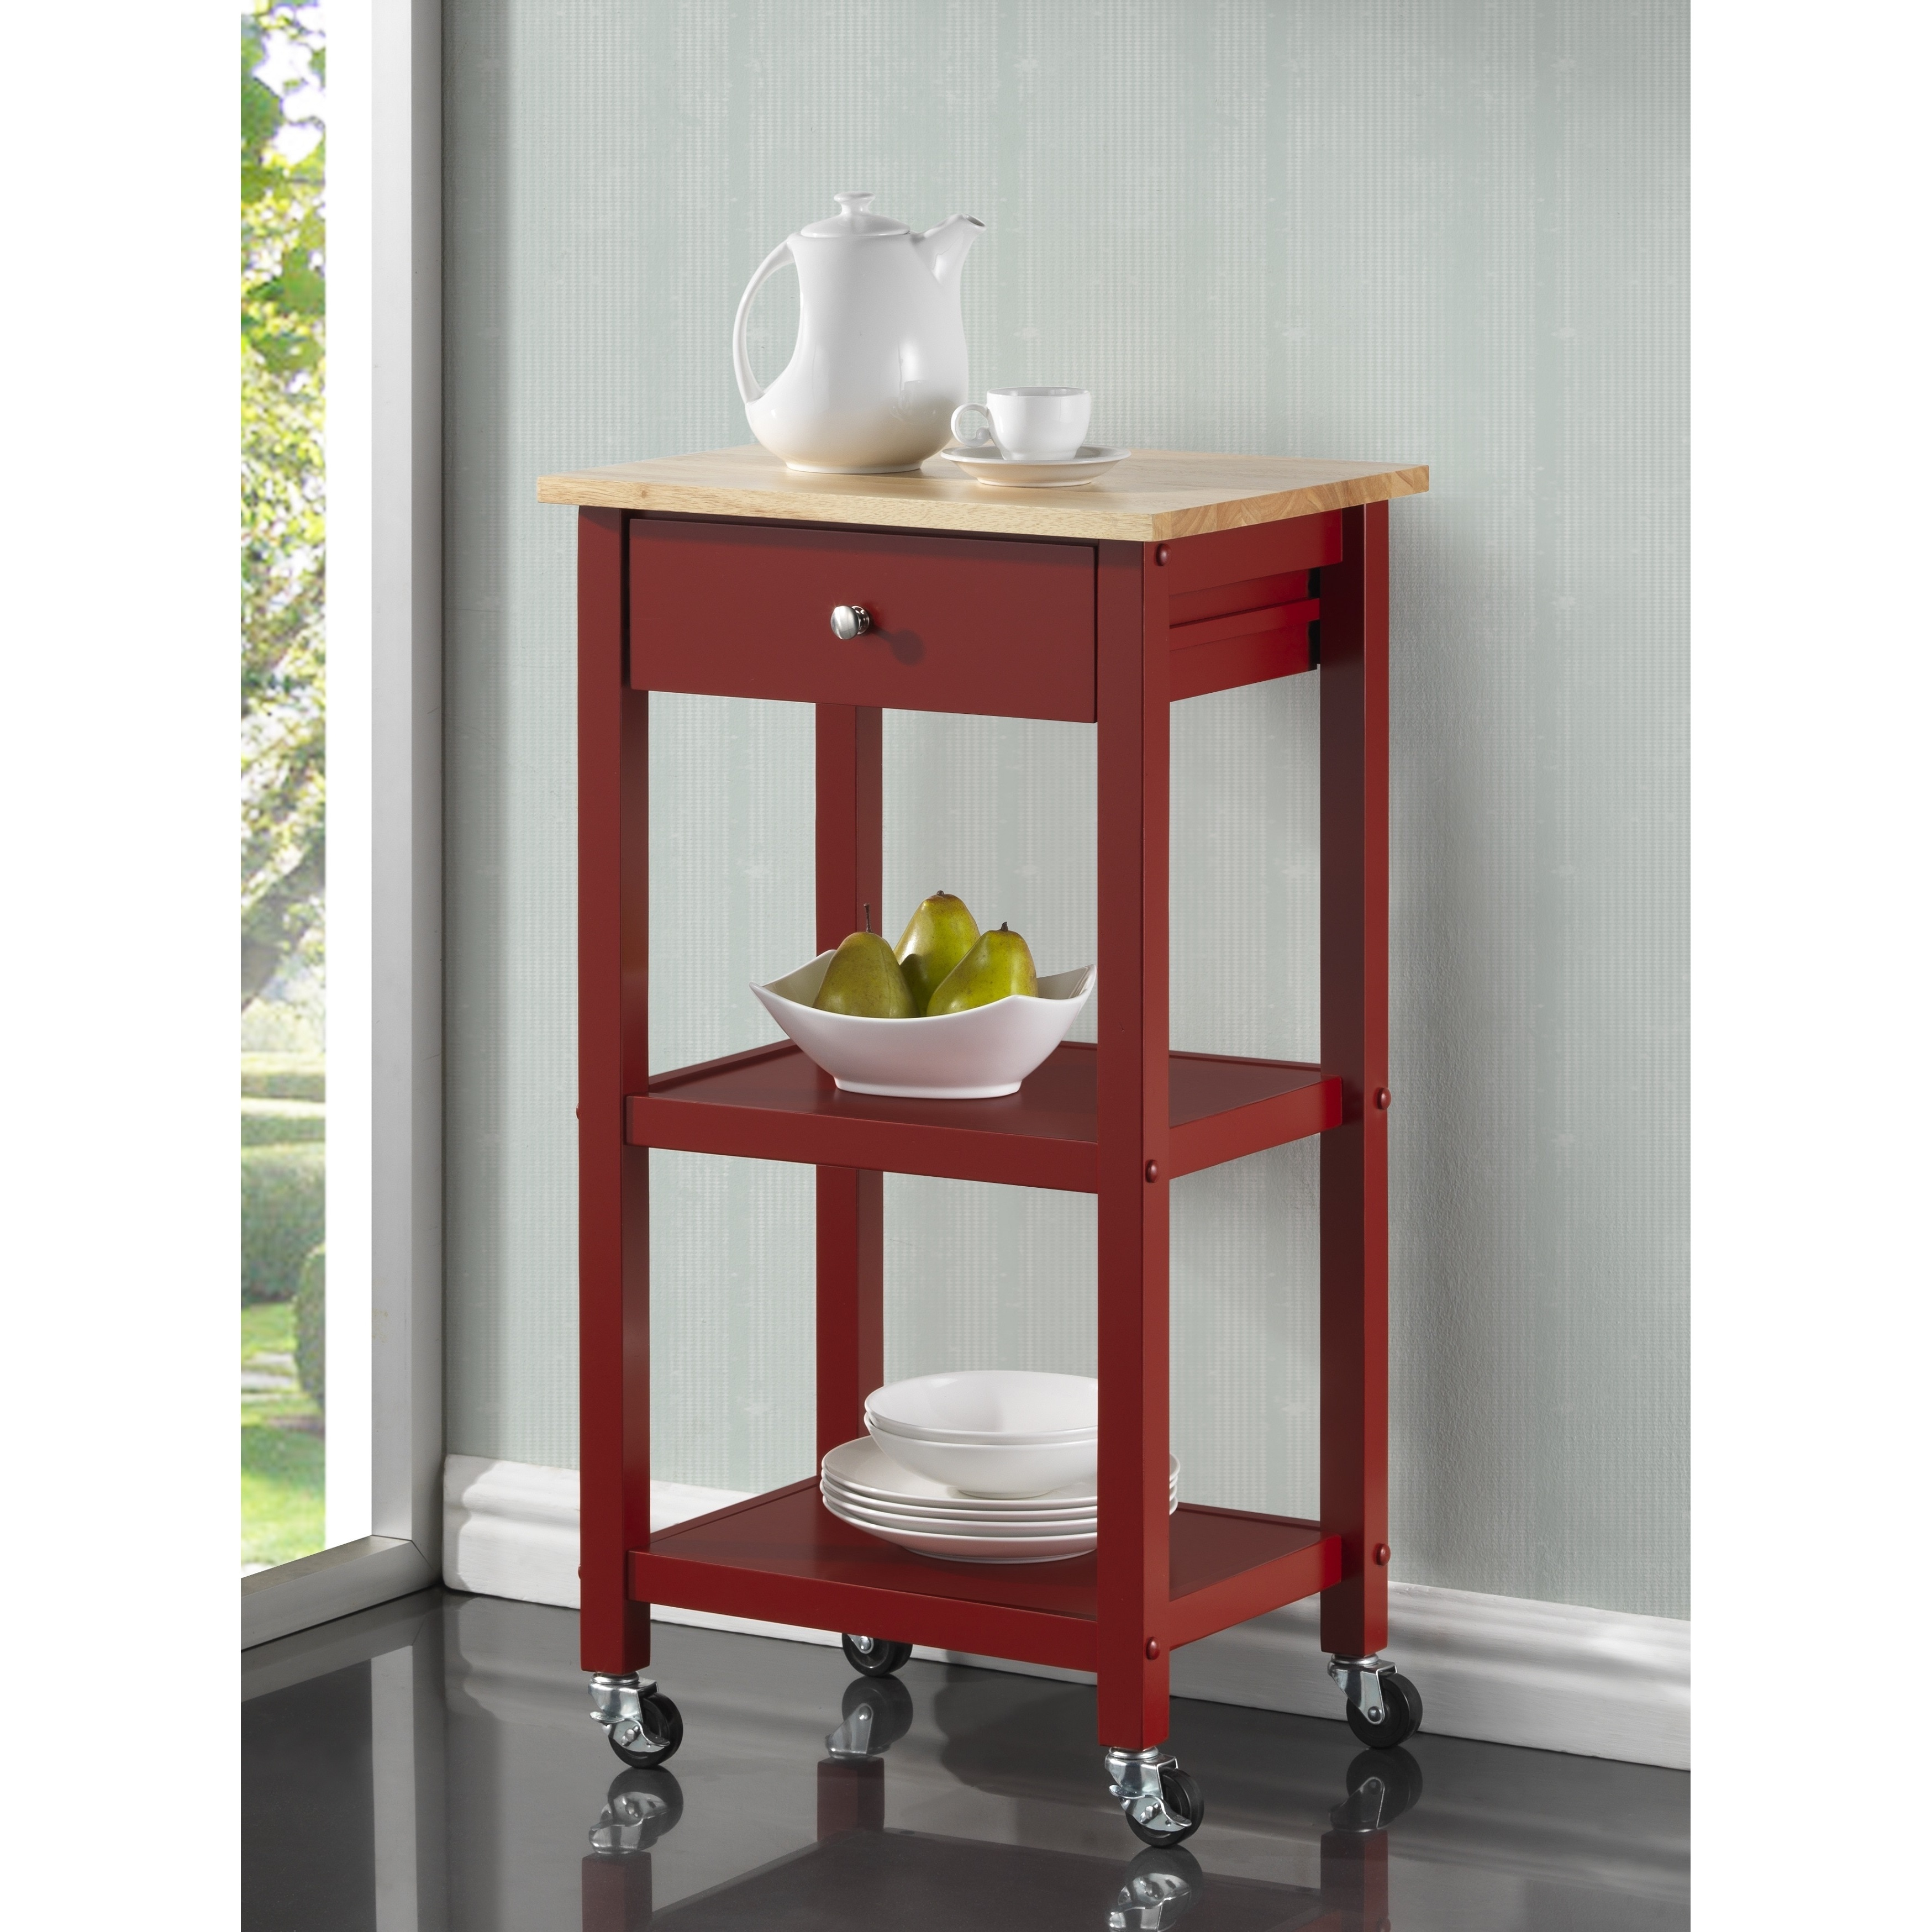 oak wooden shelves kitchen two carts legs simple portable layer solid with butcher design haing furniture iron unpolished having glass island polished cart ideas black panel on delectable used open handle using white wheels square stains metal top wood block outdoor double shelf door and